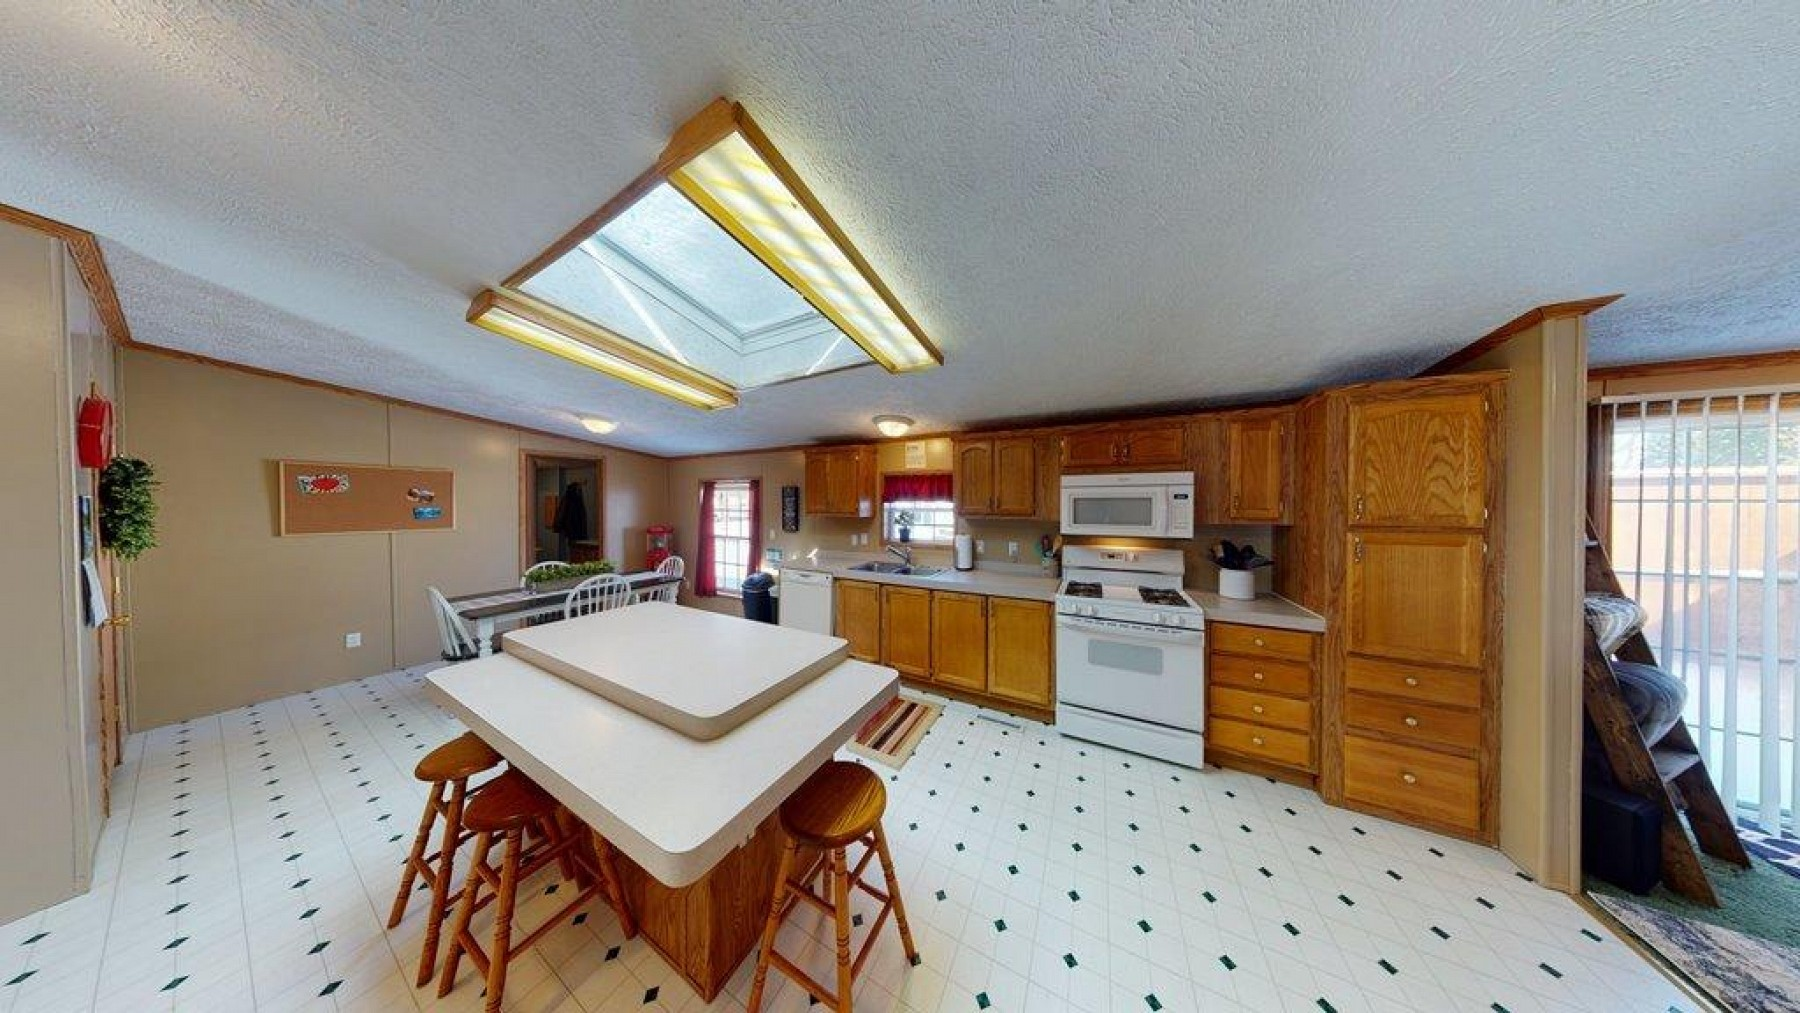 619 6th Avenue S, Brookings, SD 57006